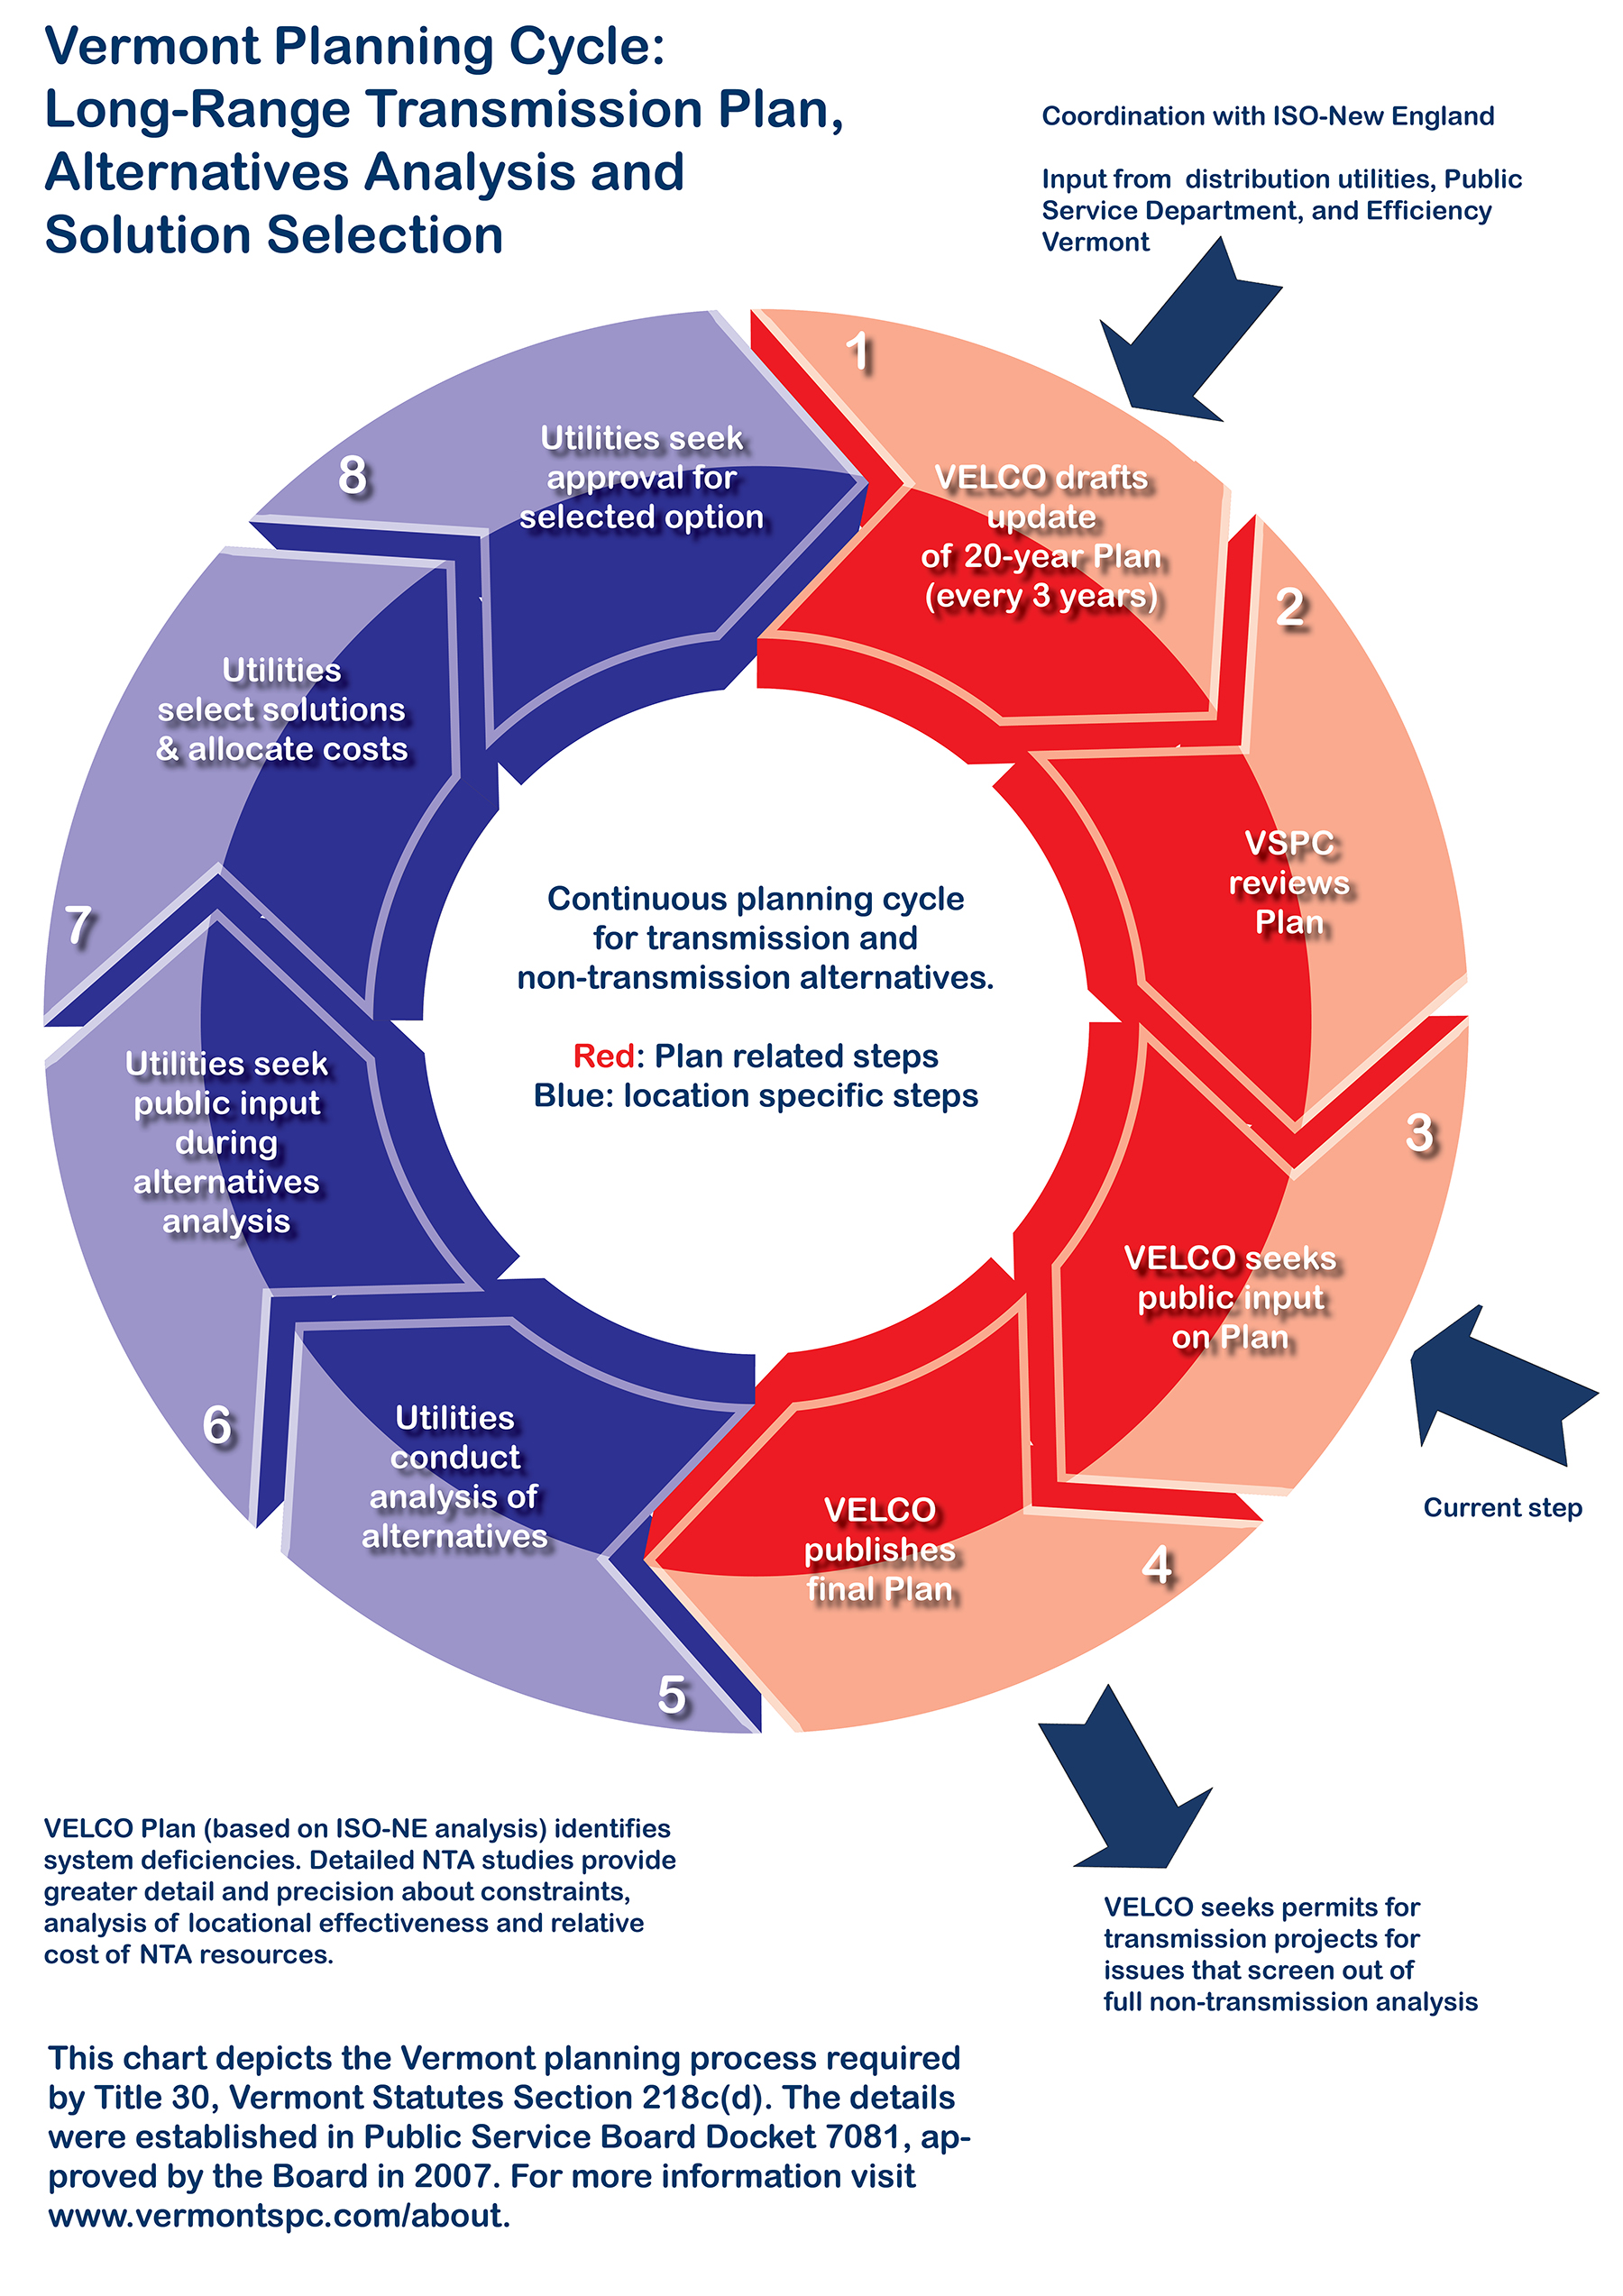 Vermont Planning Cycle Graphic